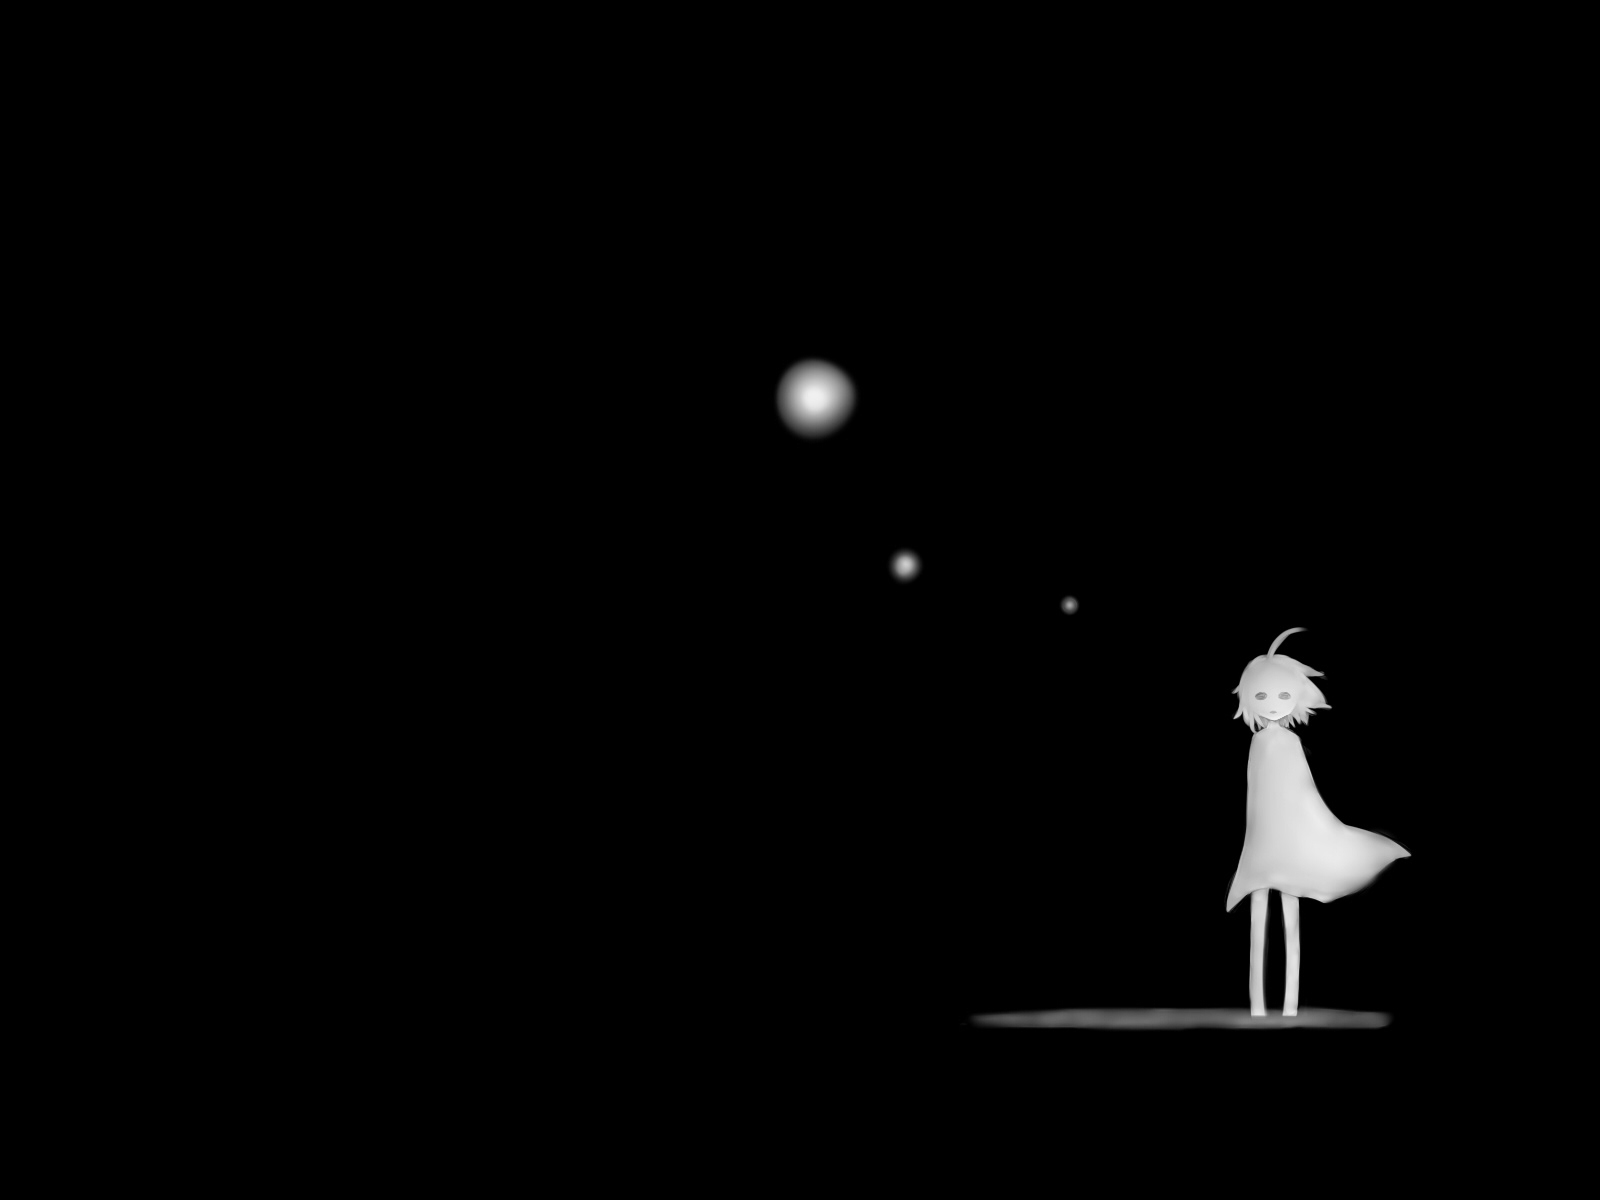 Black and white sad lonely anime